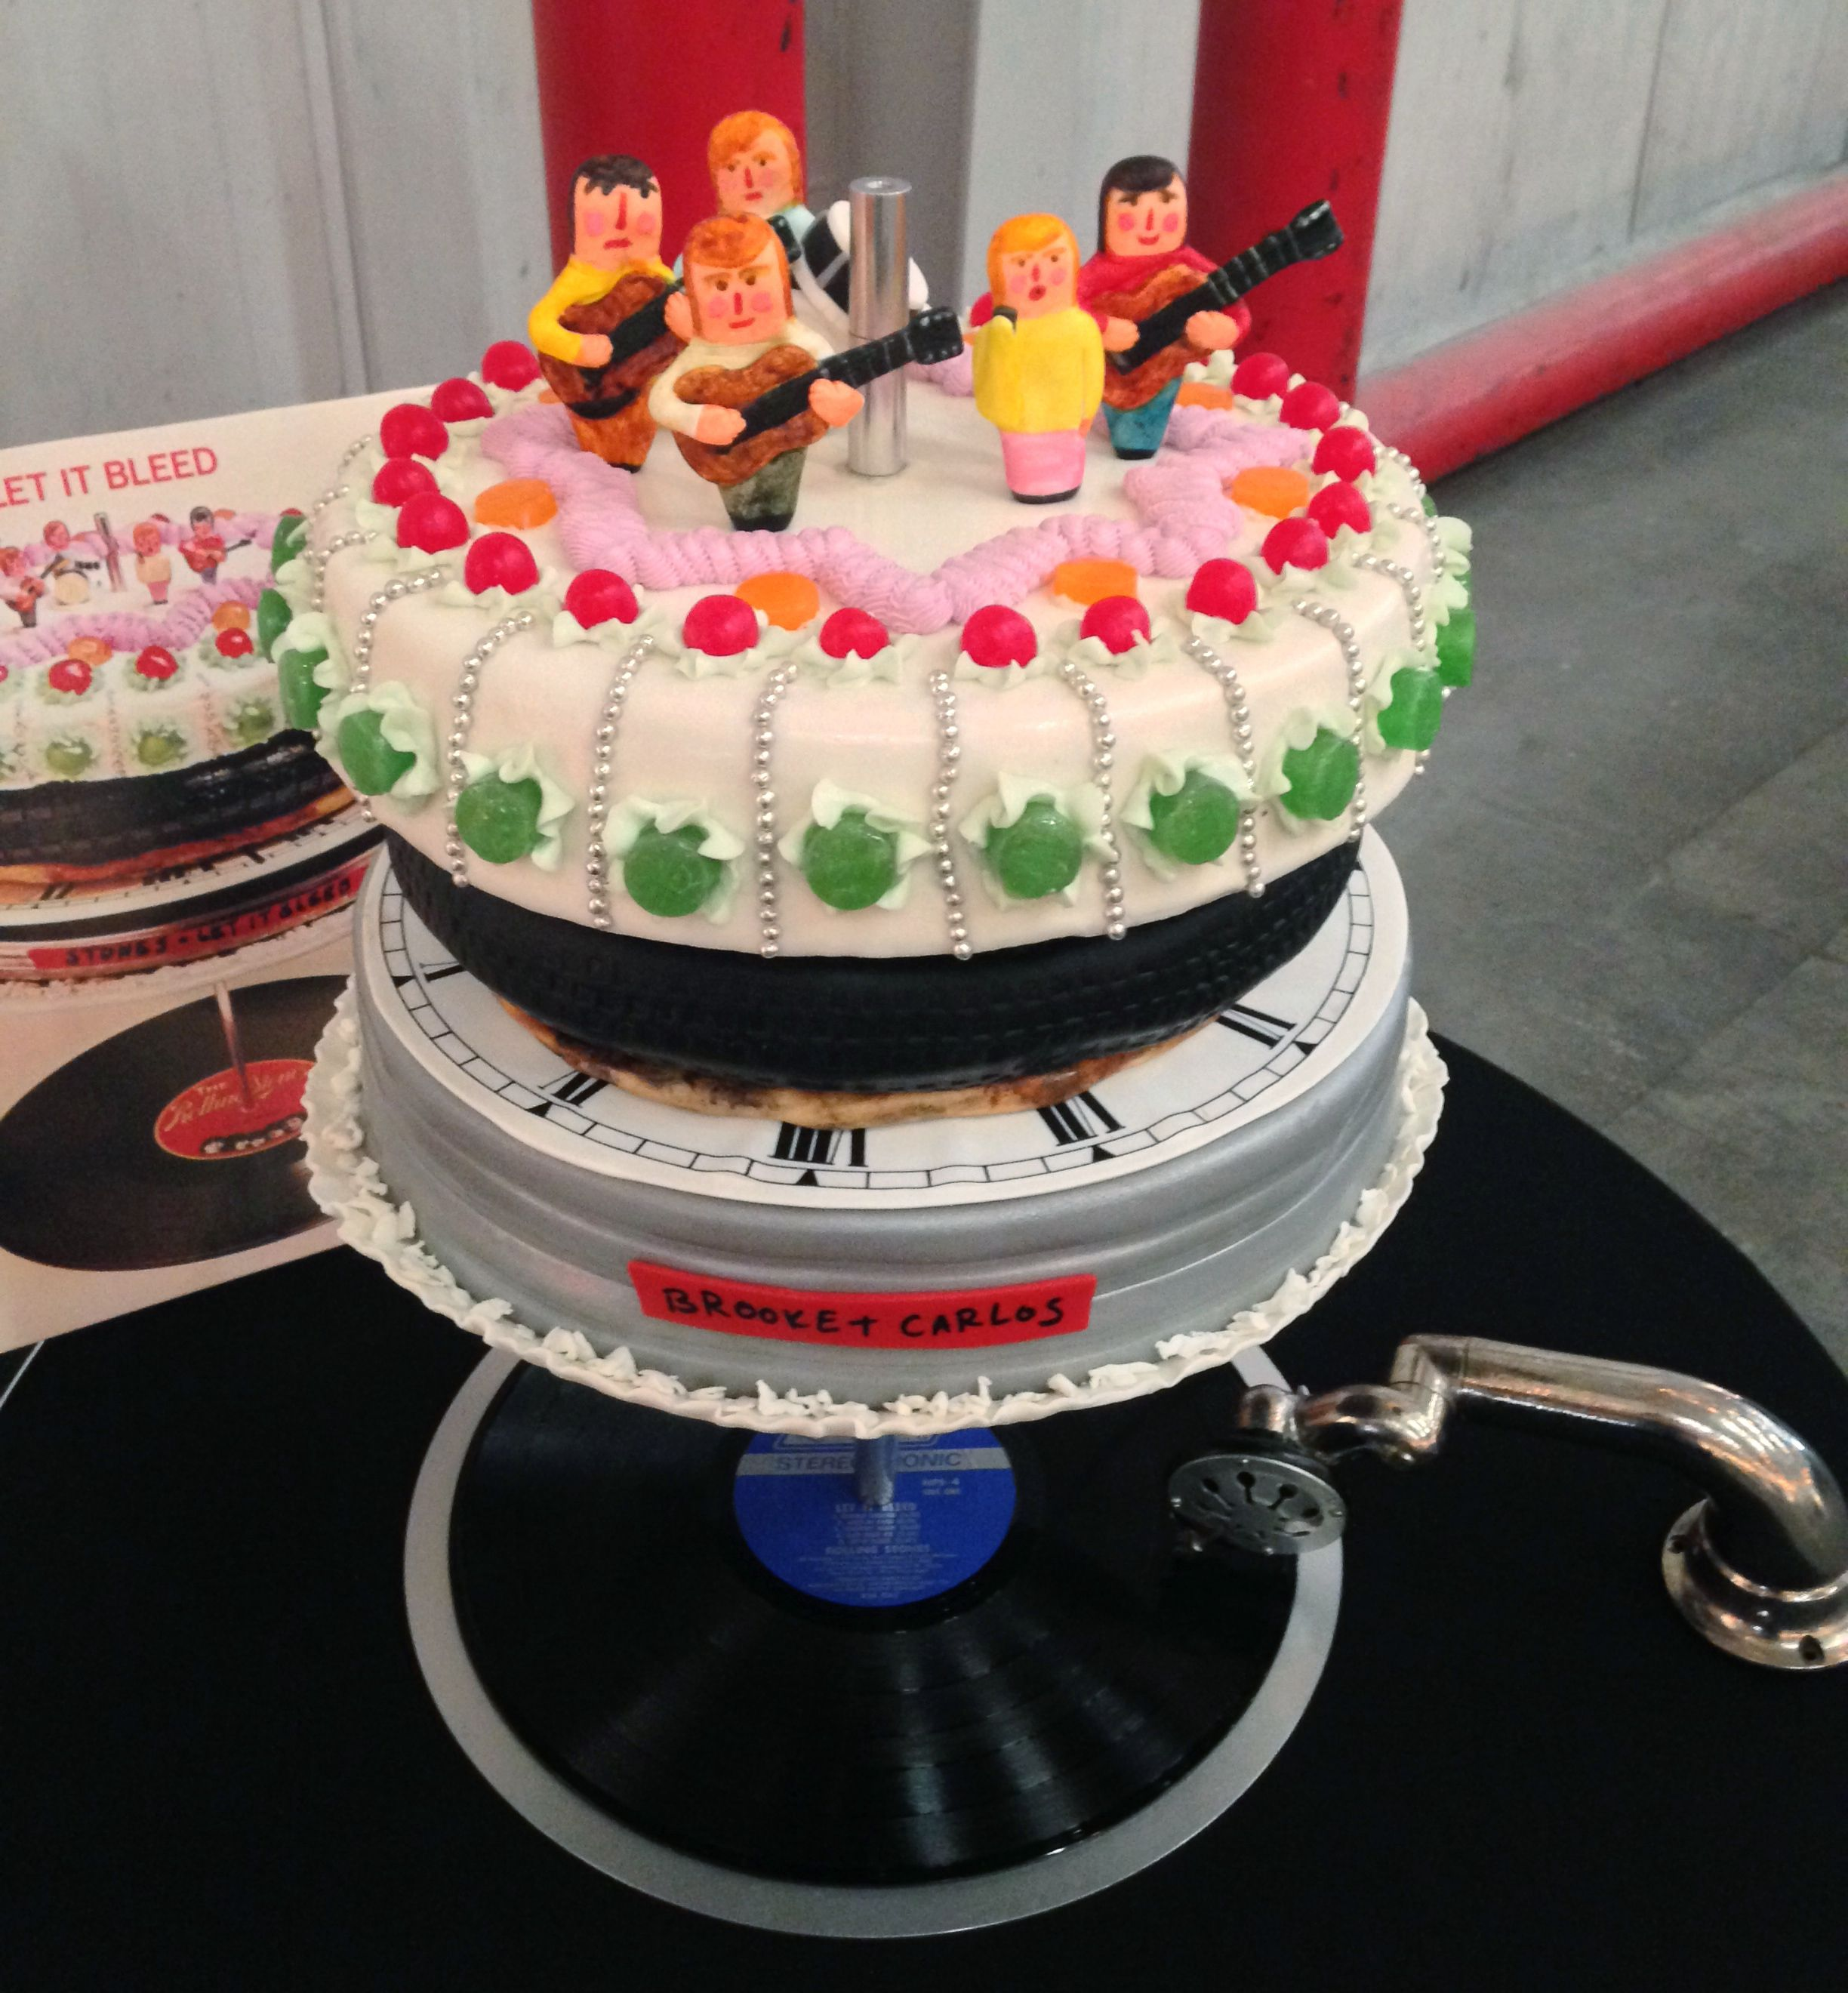 Groom's Cake To Replicate The Rolling Stones Album Cover